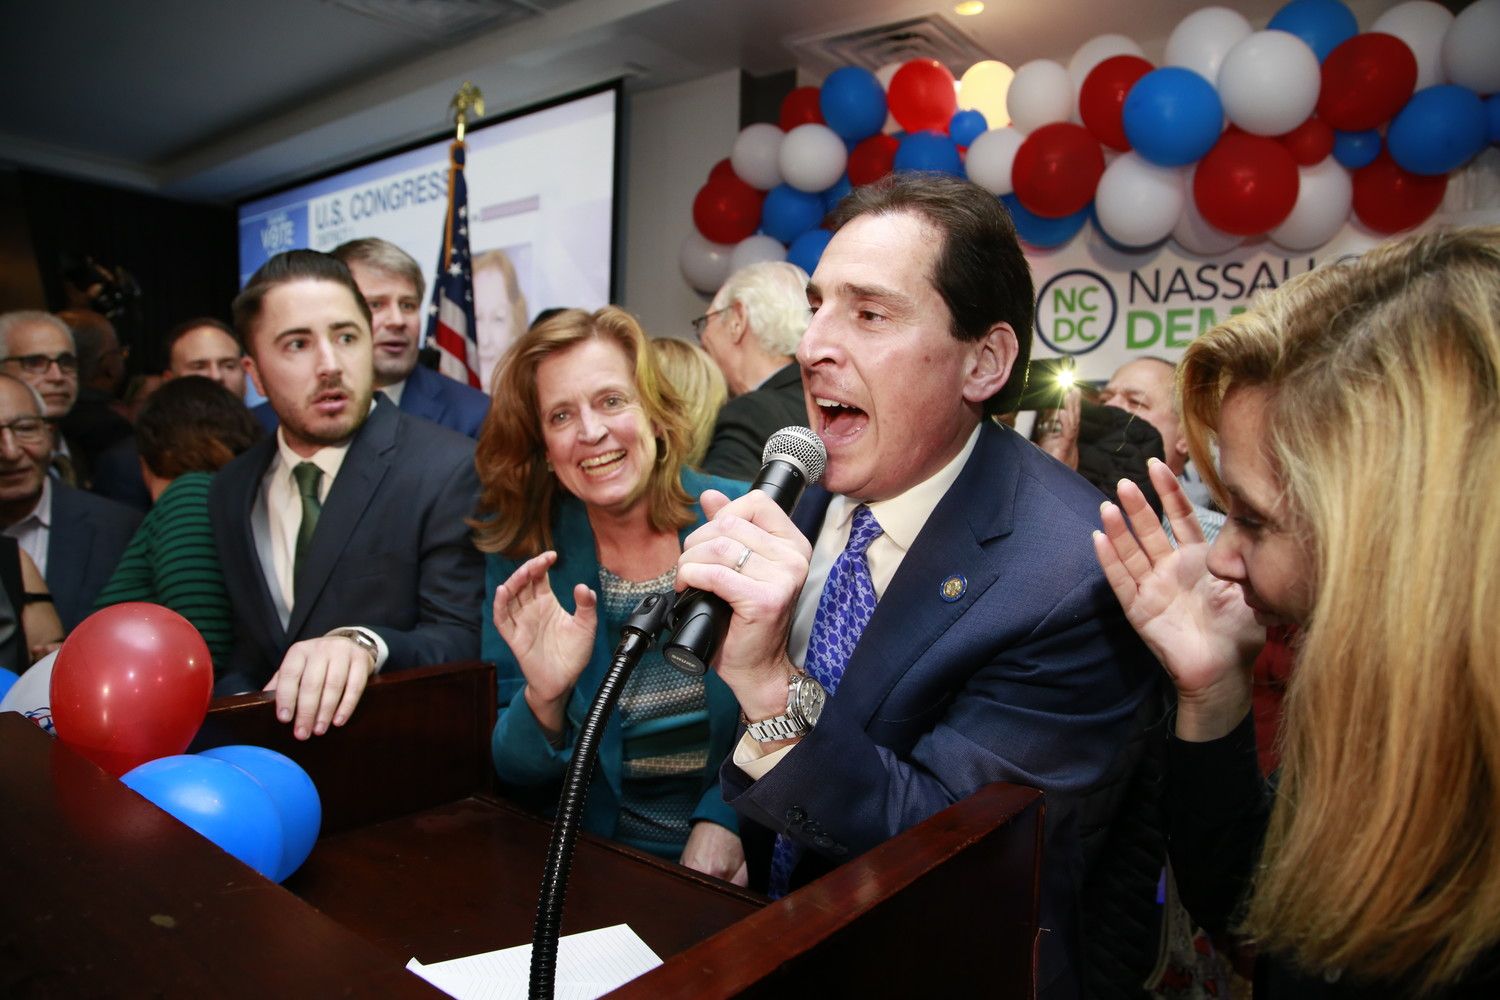 State Sen. Todd Kaminsky, a Democrat from Long Beach, was elected to another two-year term in the 9th Senate District on Tuesday.